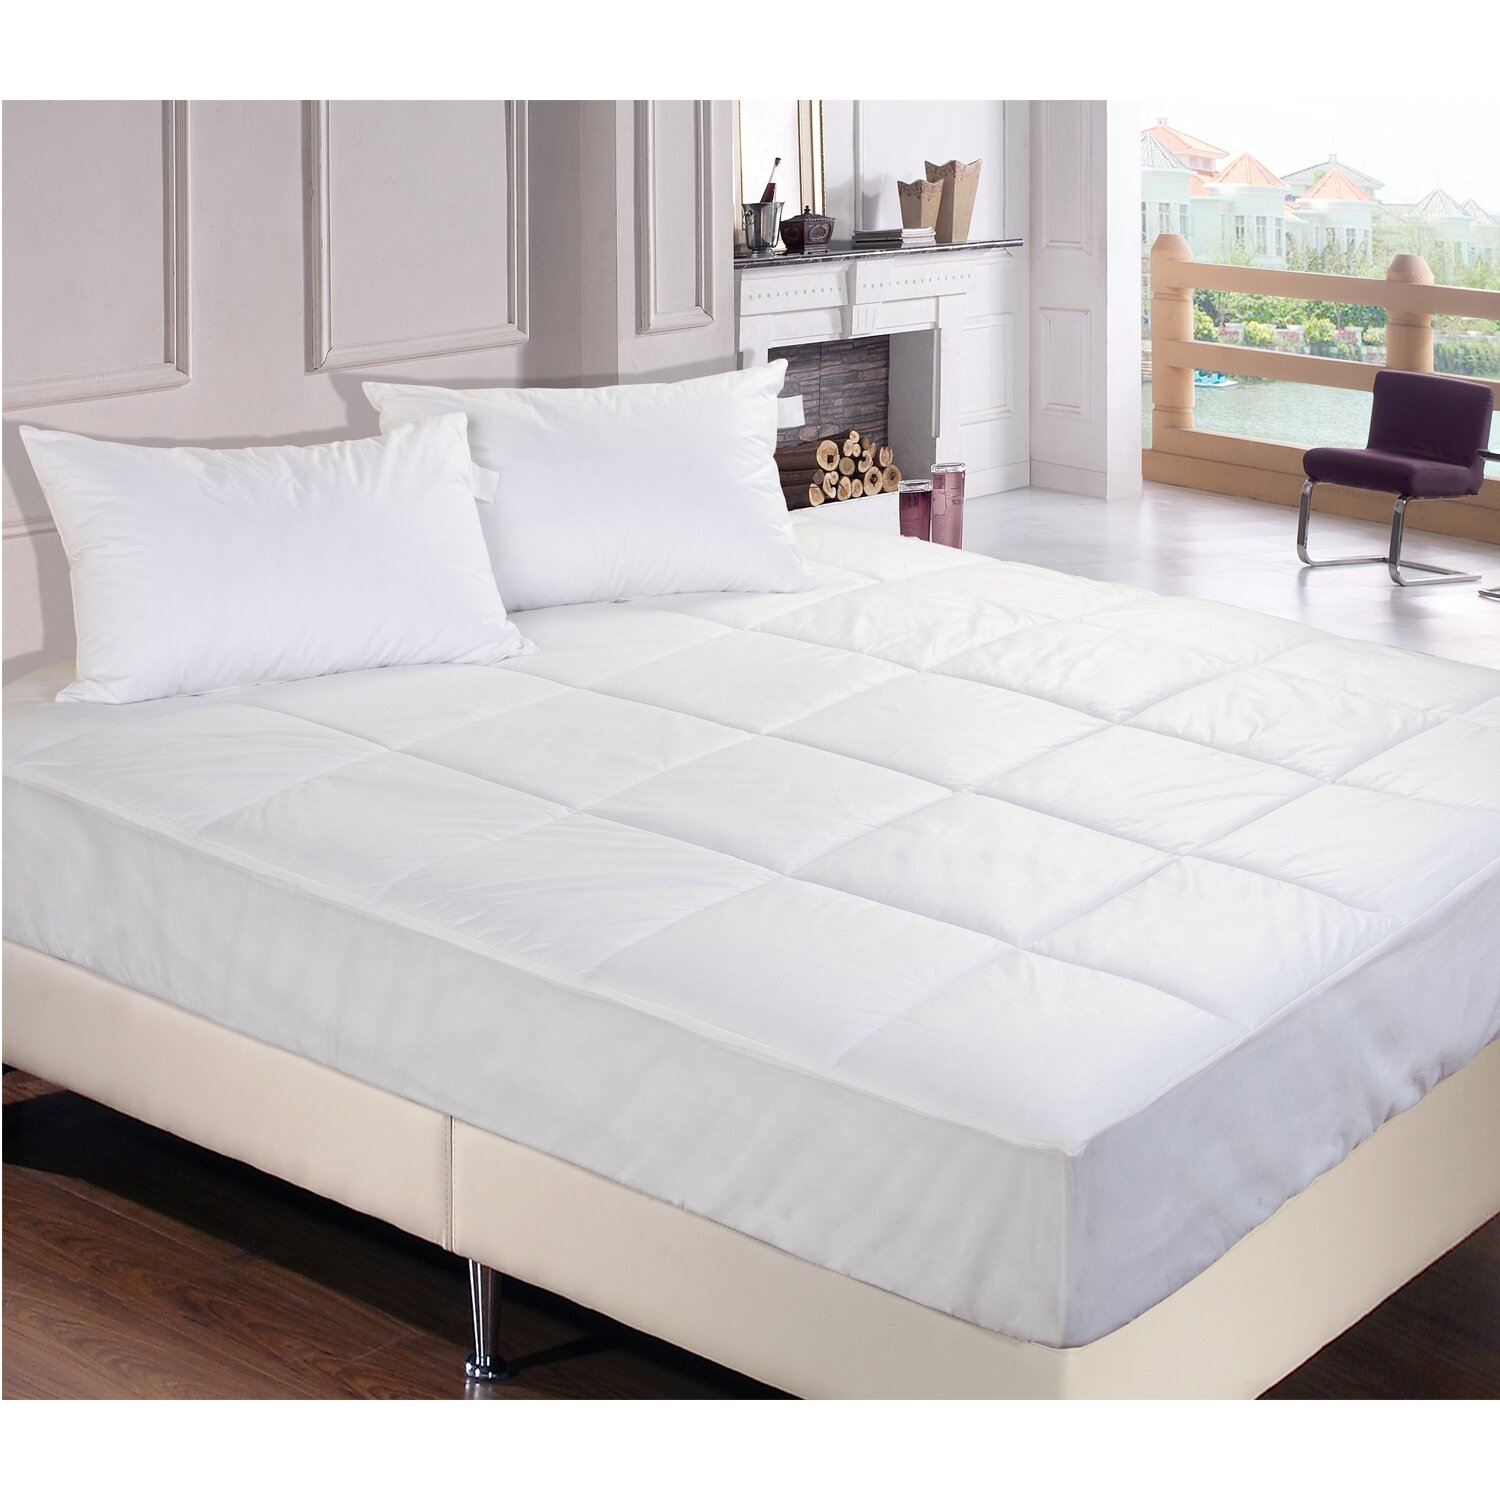 Permafresh bed bug dust mite control water resistant for Bed bug proof mattress pad